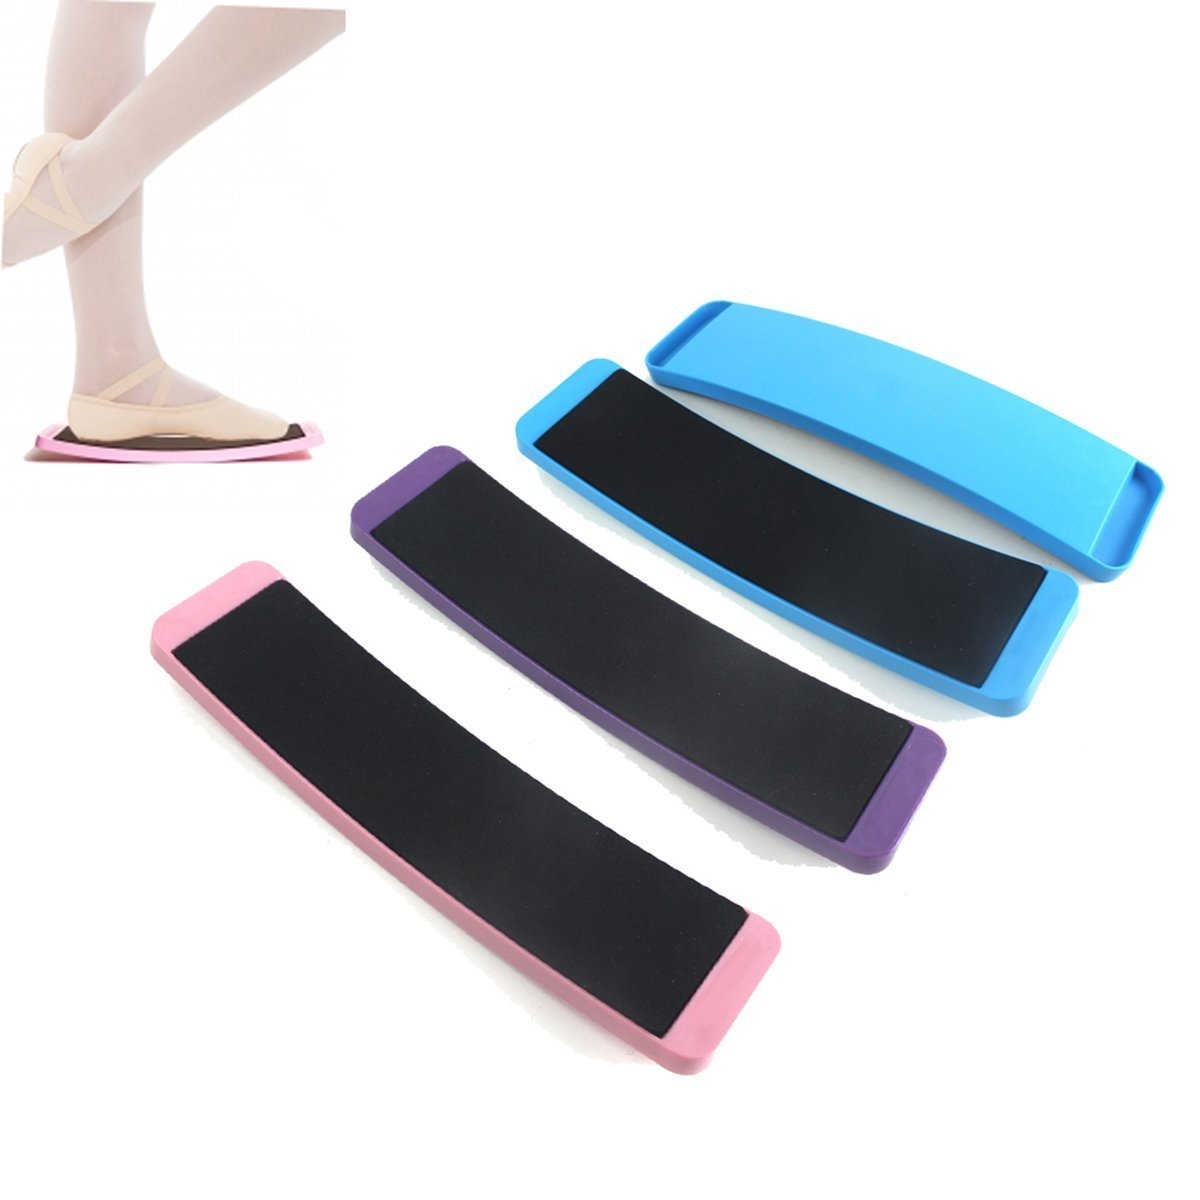 WINOMO Turning Board Ballet Spin Board for Dancing Training Equipment for Dancers